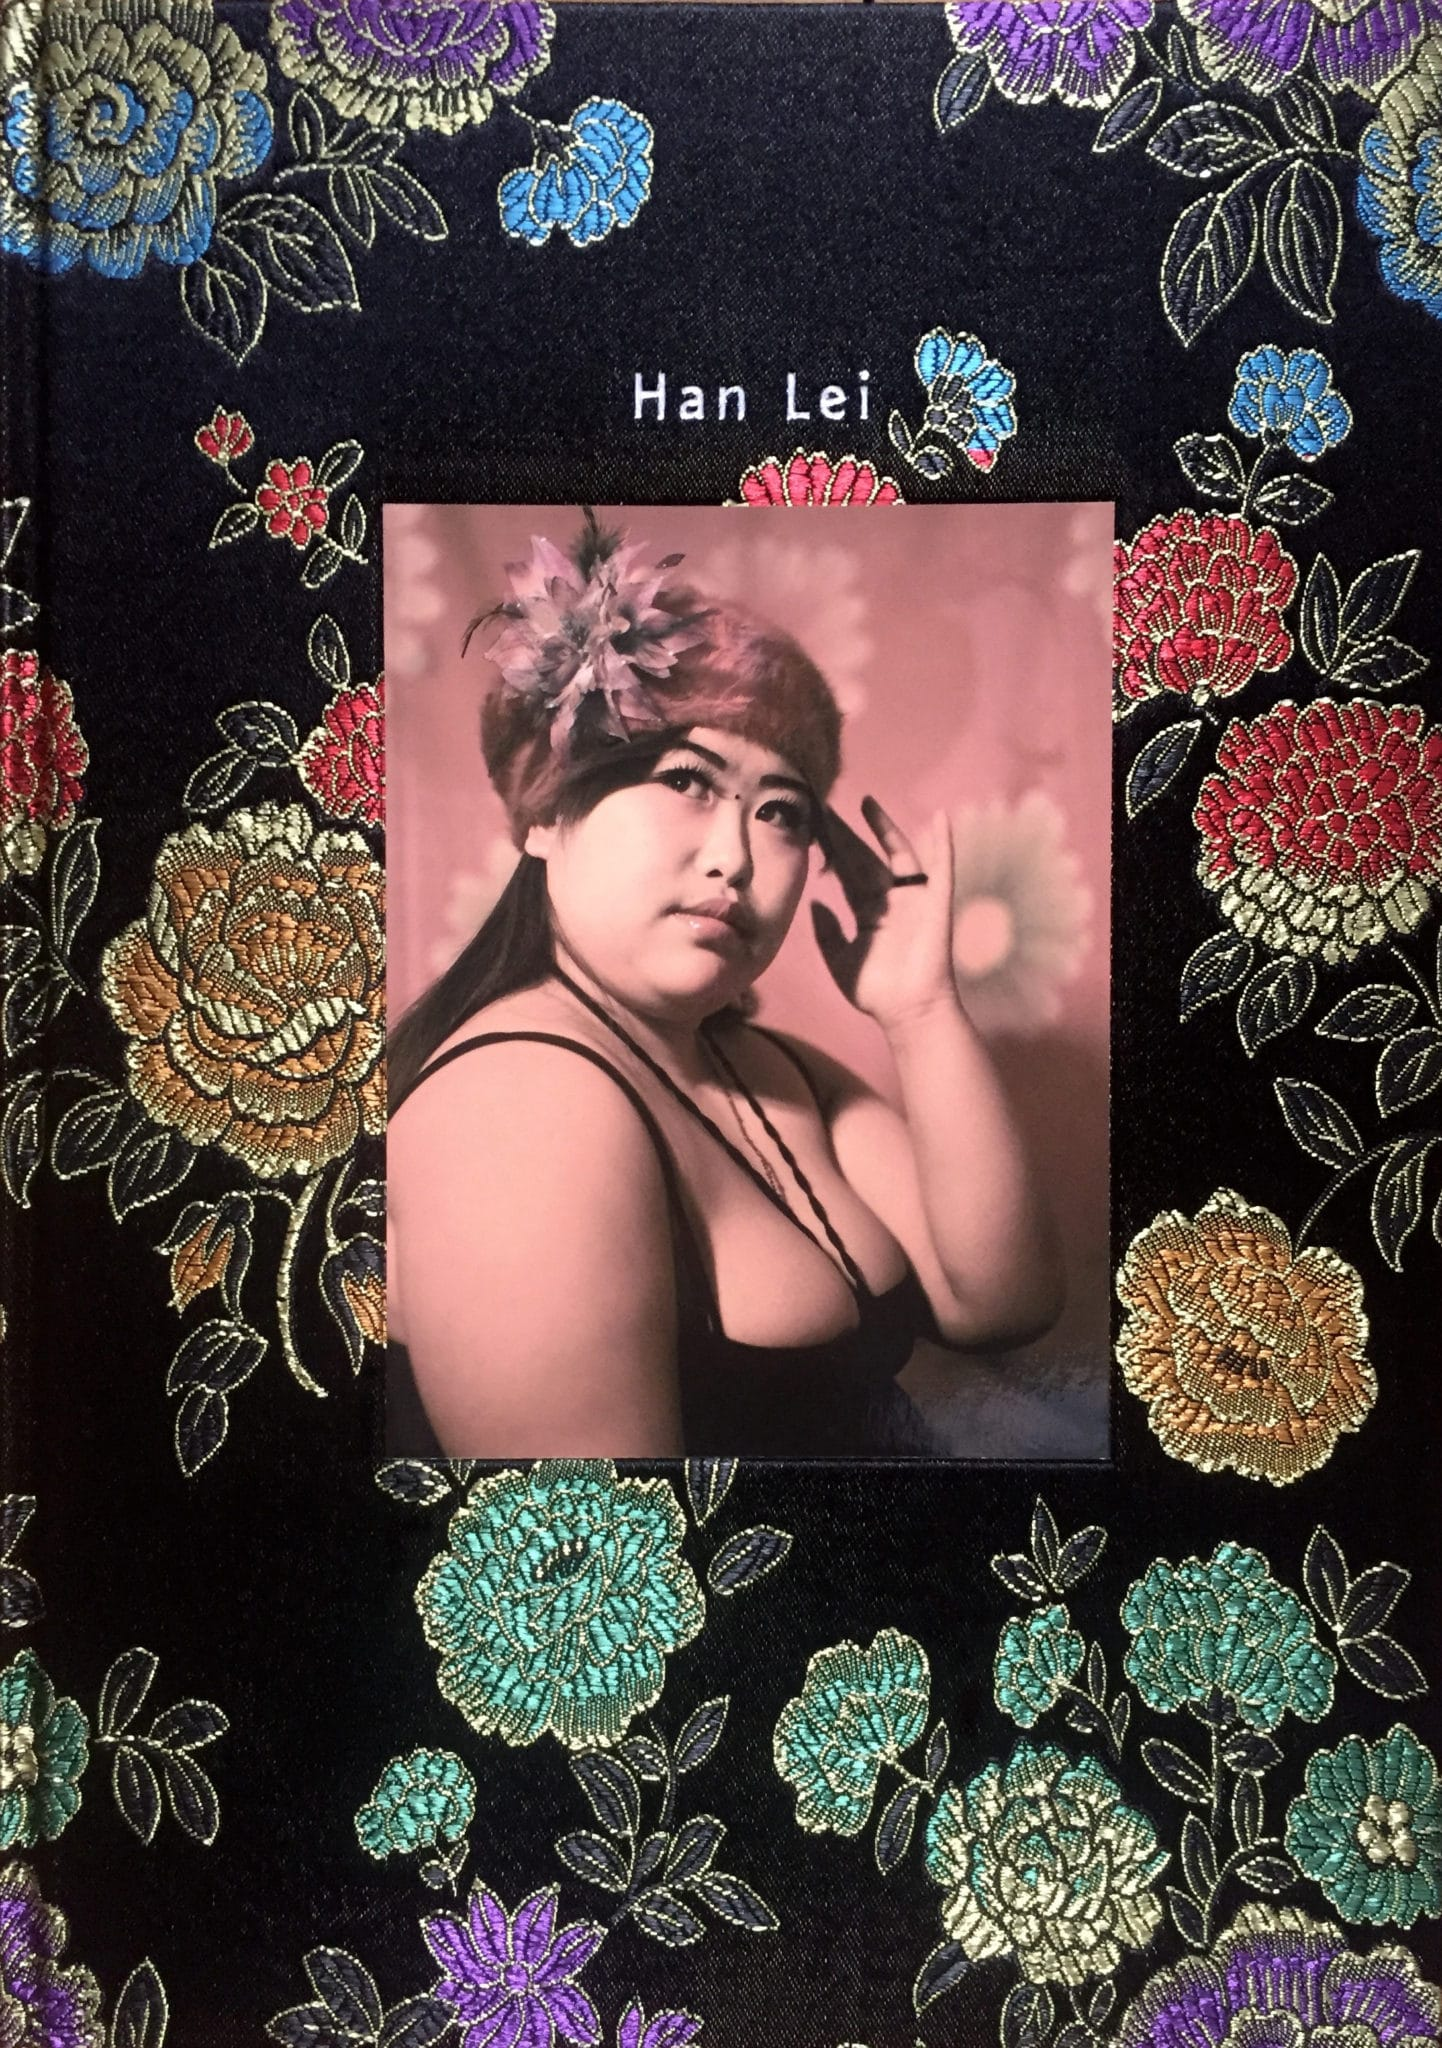 Han Lei, BeSpoke Collection N°2, Limited to 250 copies with a signed and numbered c-print by the artist, 160mm X 240mm, hard cover,cloth binding and more…